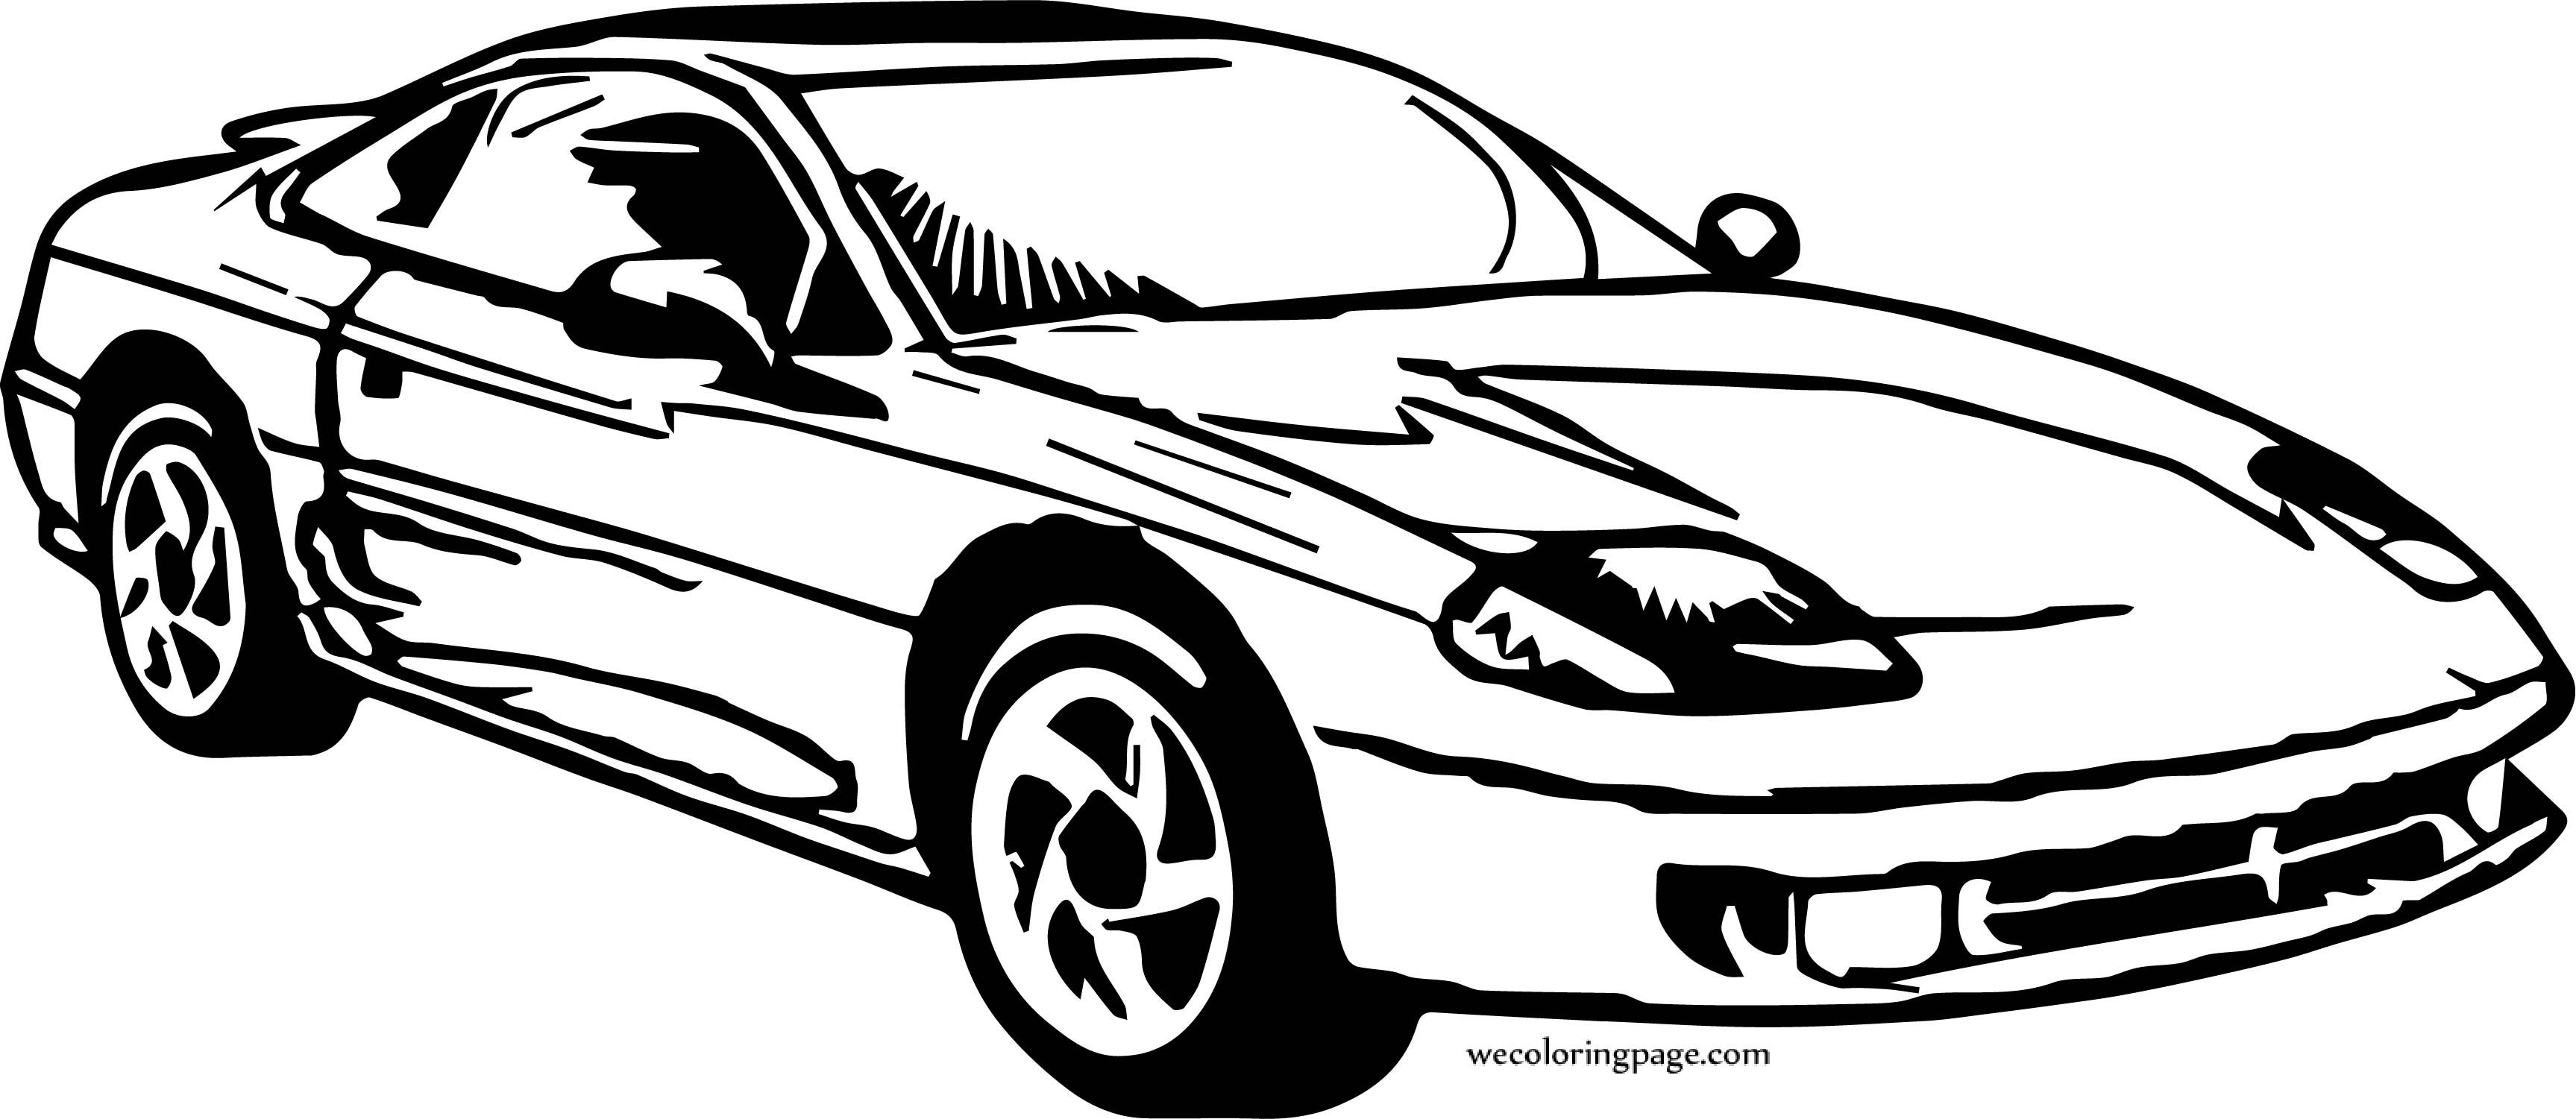 Car Wecoloringpage Coloring Page 169